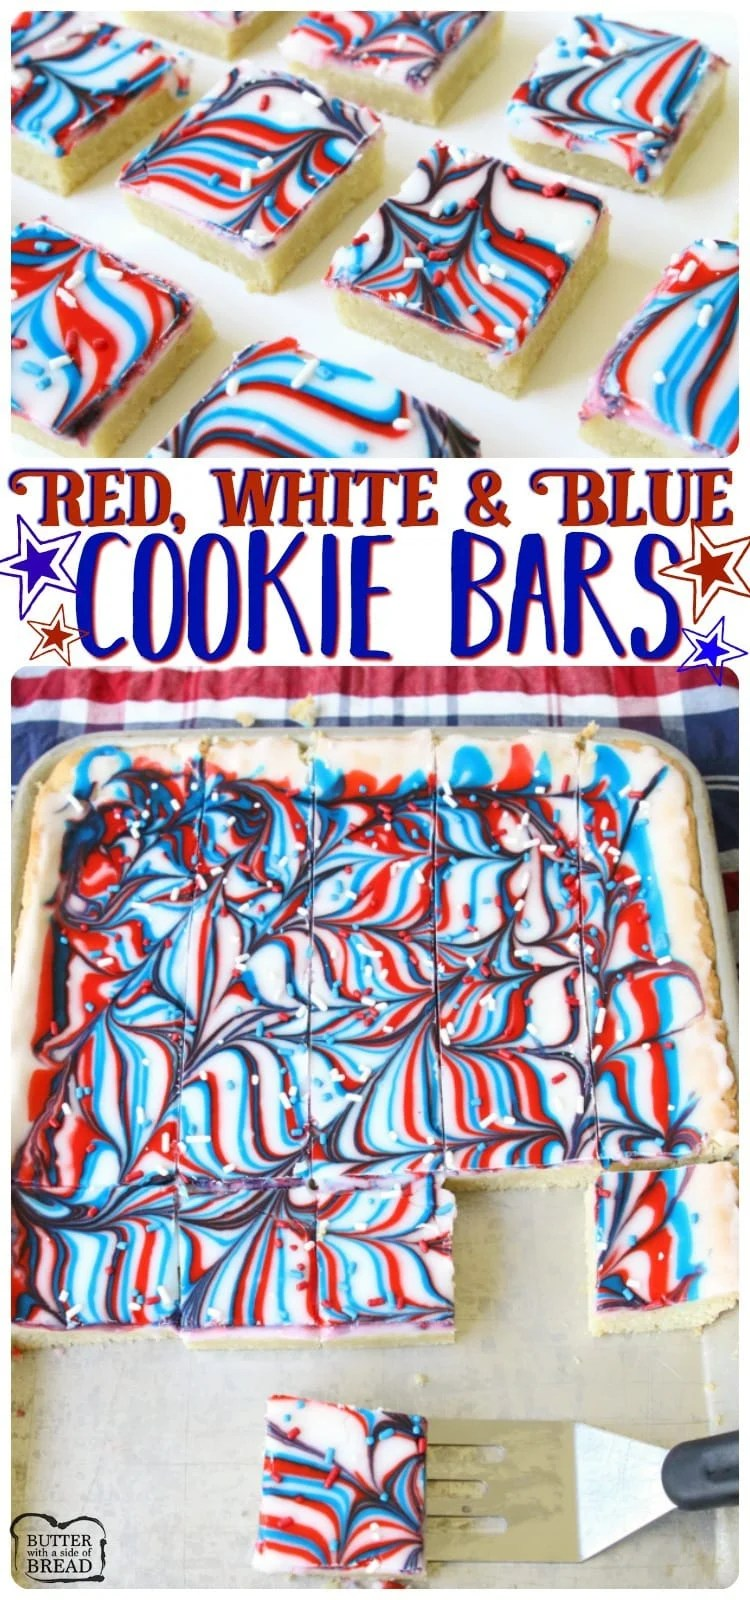 Fun Patriotic Cookie Bars made with swirled red, white & blue icing making them perfectly festive! Easy sugar cookie bar recipe for 4th of July & Memorial Day.